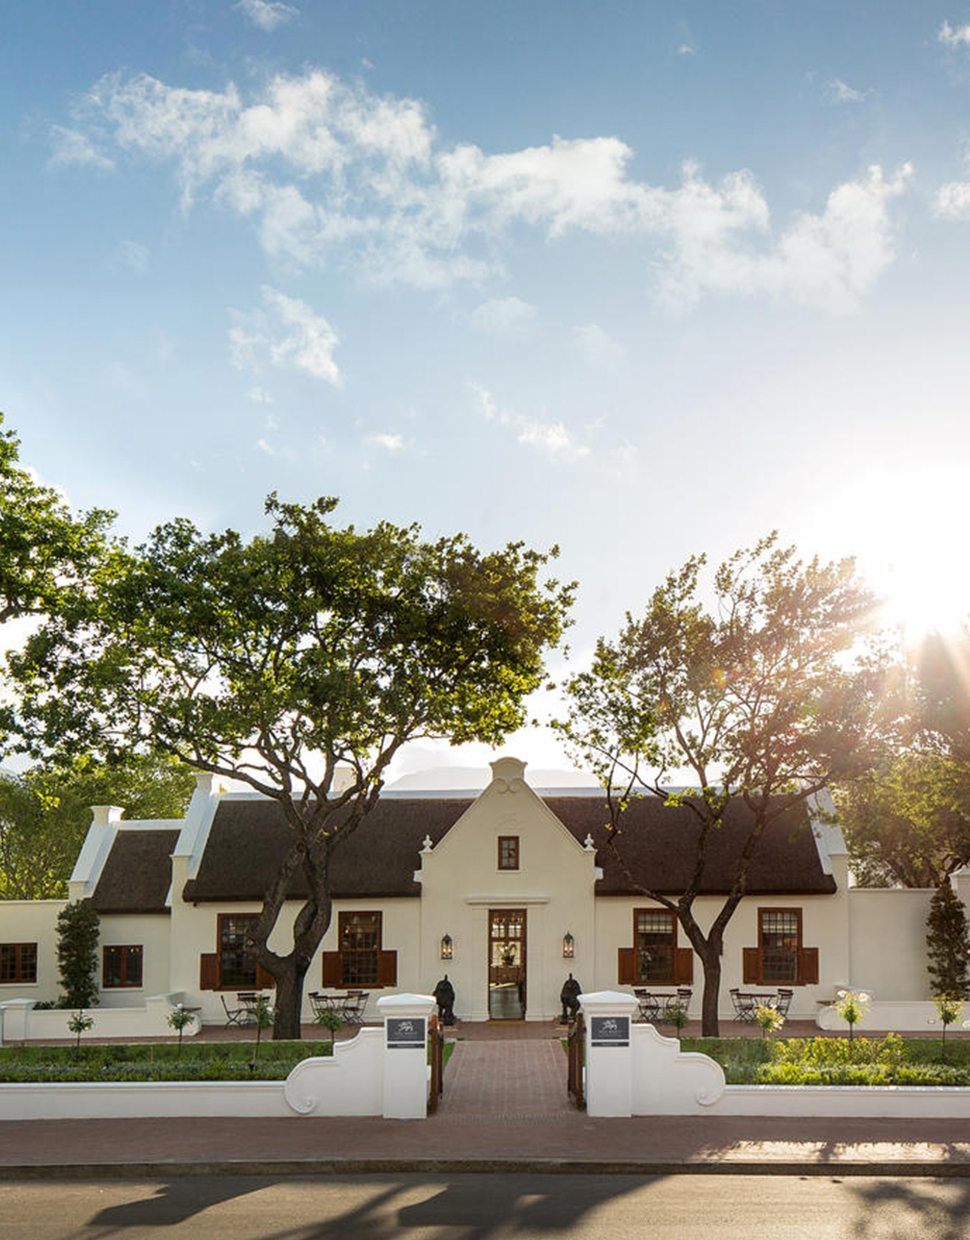 BEST-OF-THE-CAPE-WINELANDS-STELLENBOSCH-&-FRANSCHHOEK.jpg